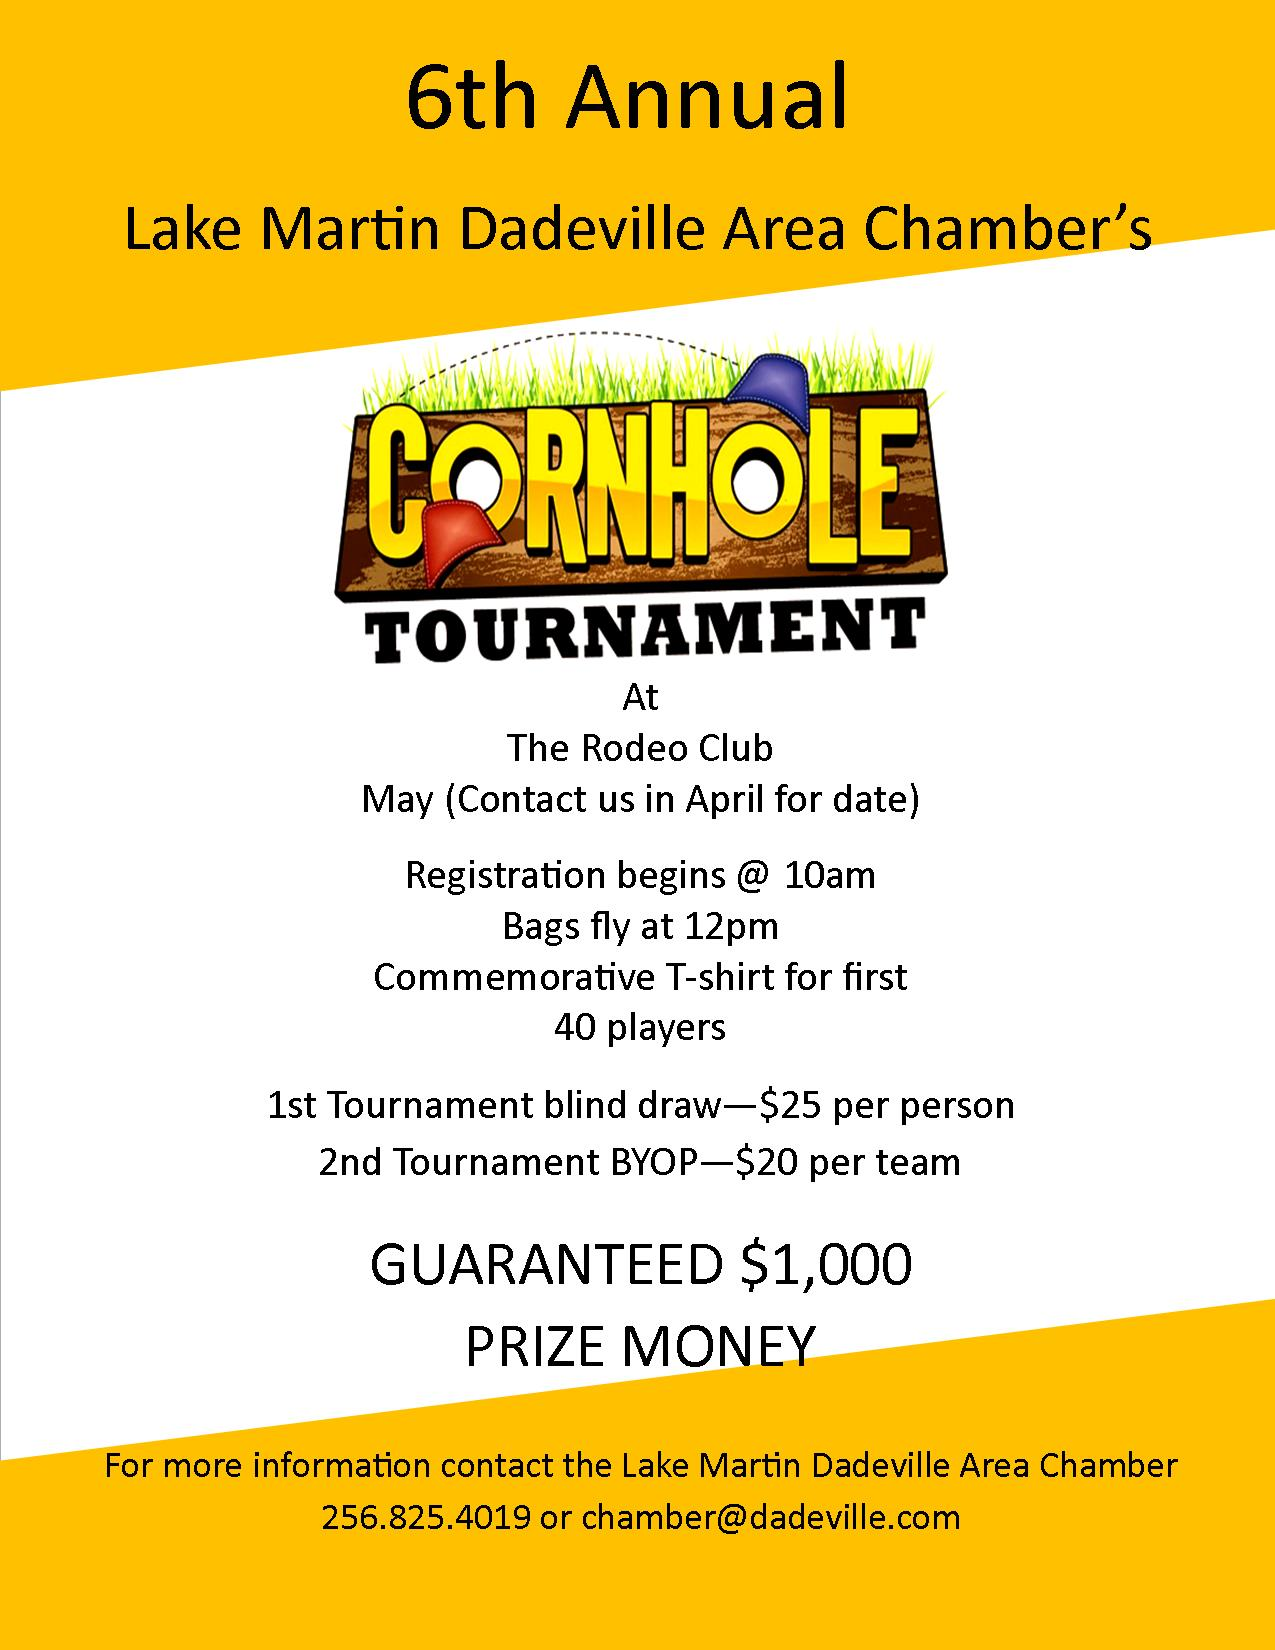 6th Annual Cornhole Tournament